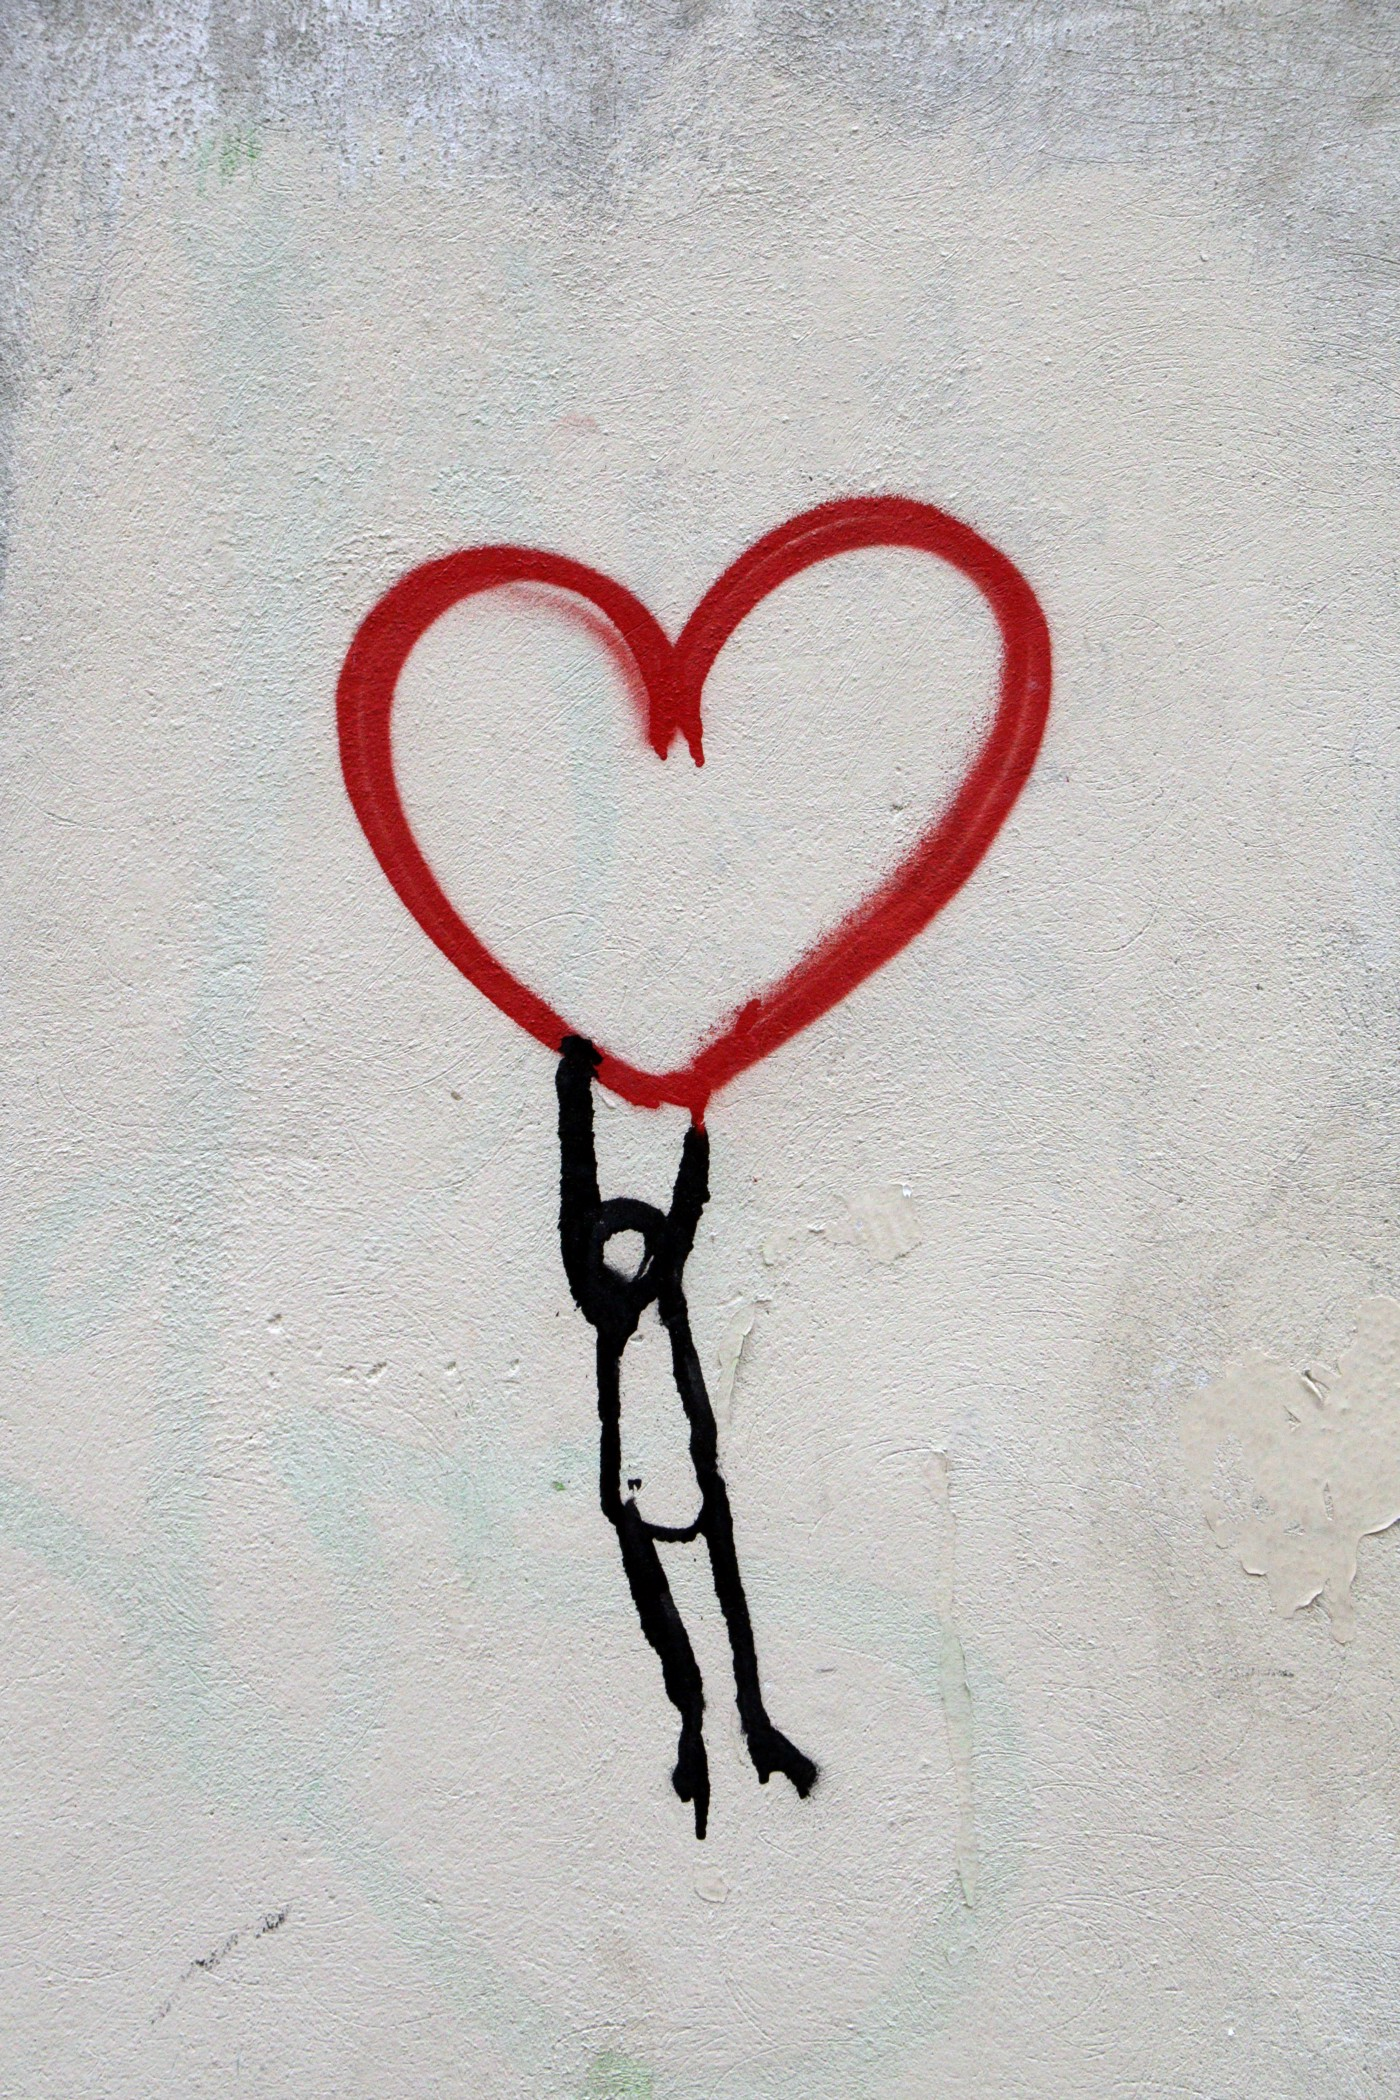 Hand-drawn, painted image of a red heart with a stick figure hanging onto it and dangling from the bottom of the heart.